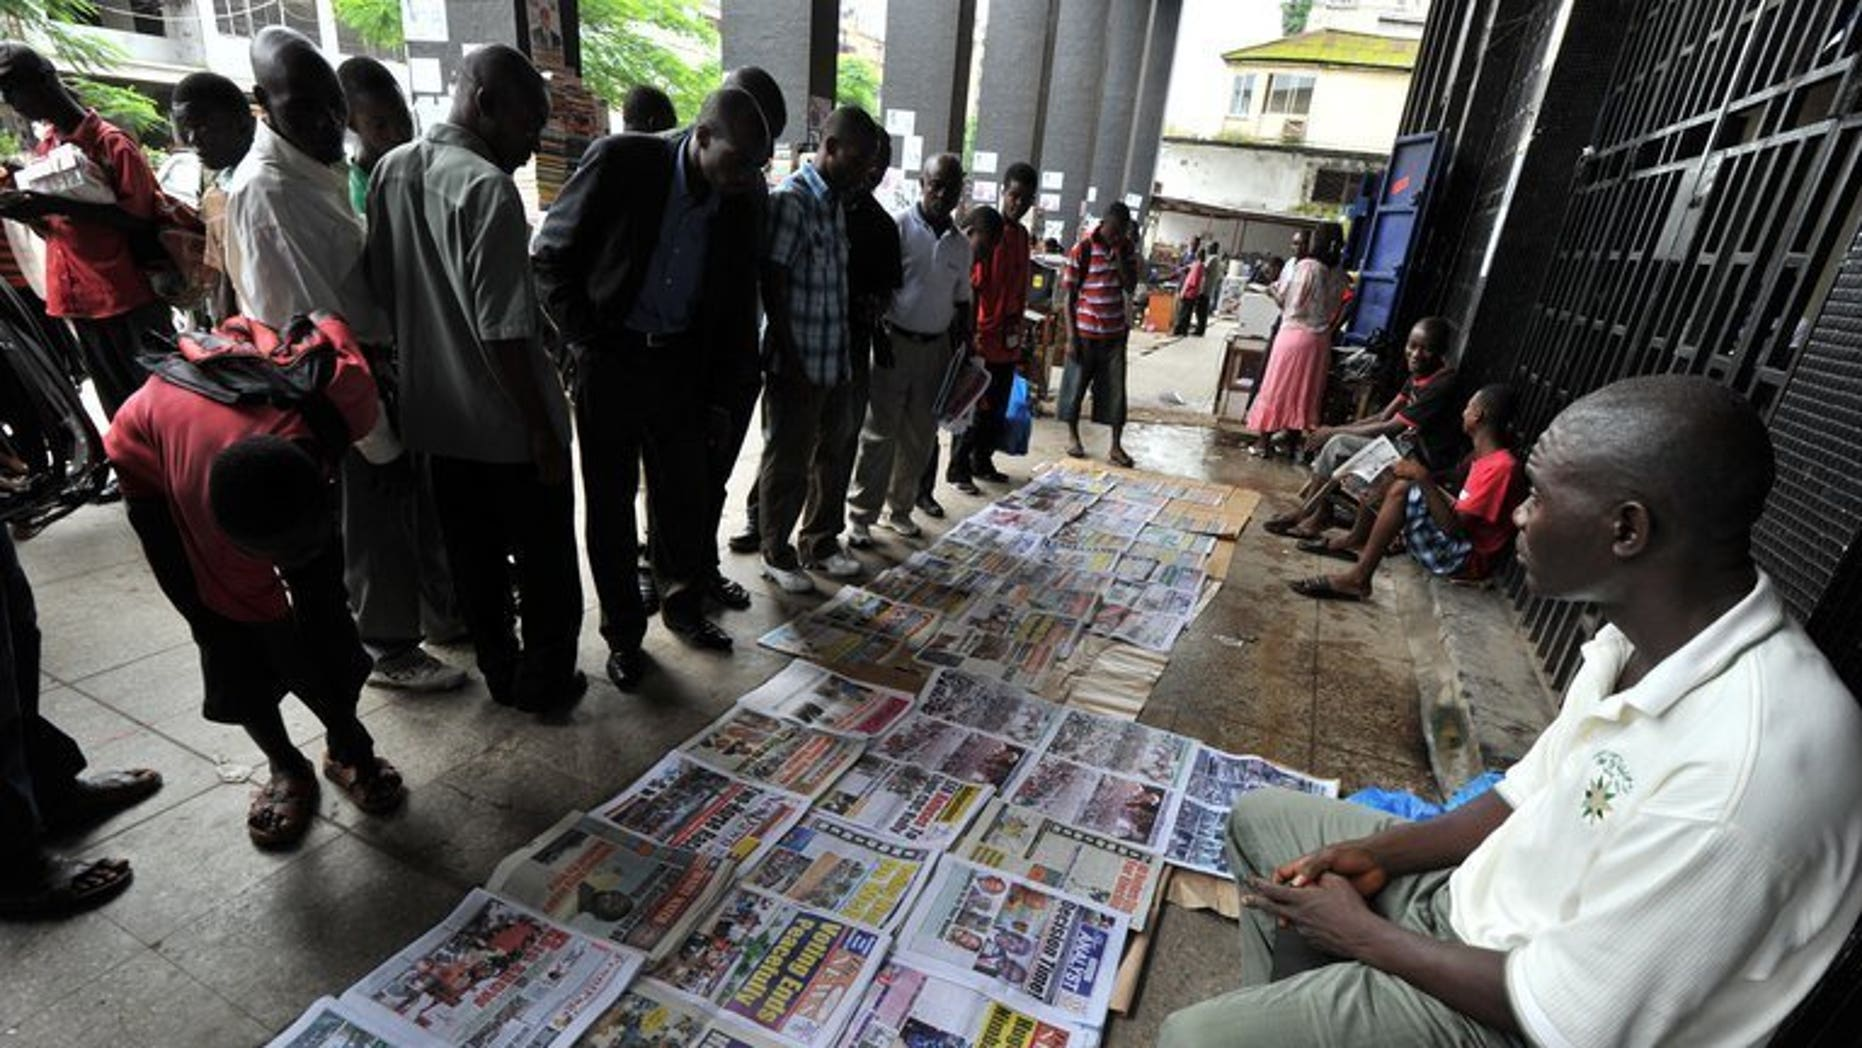 People look at newspapers laid out on the street in the Liberian capital Monrovia on October 12, 2011. The publisher of one of Liberia's leading local daily newspapers has been jailed for libel over a report about government corruption, according to an AFP correspondent at the court, sparking outrage in Monrovia.